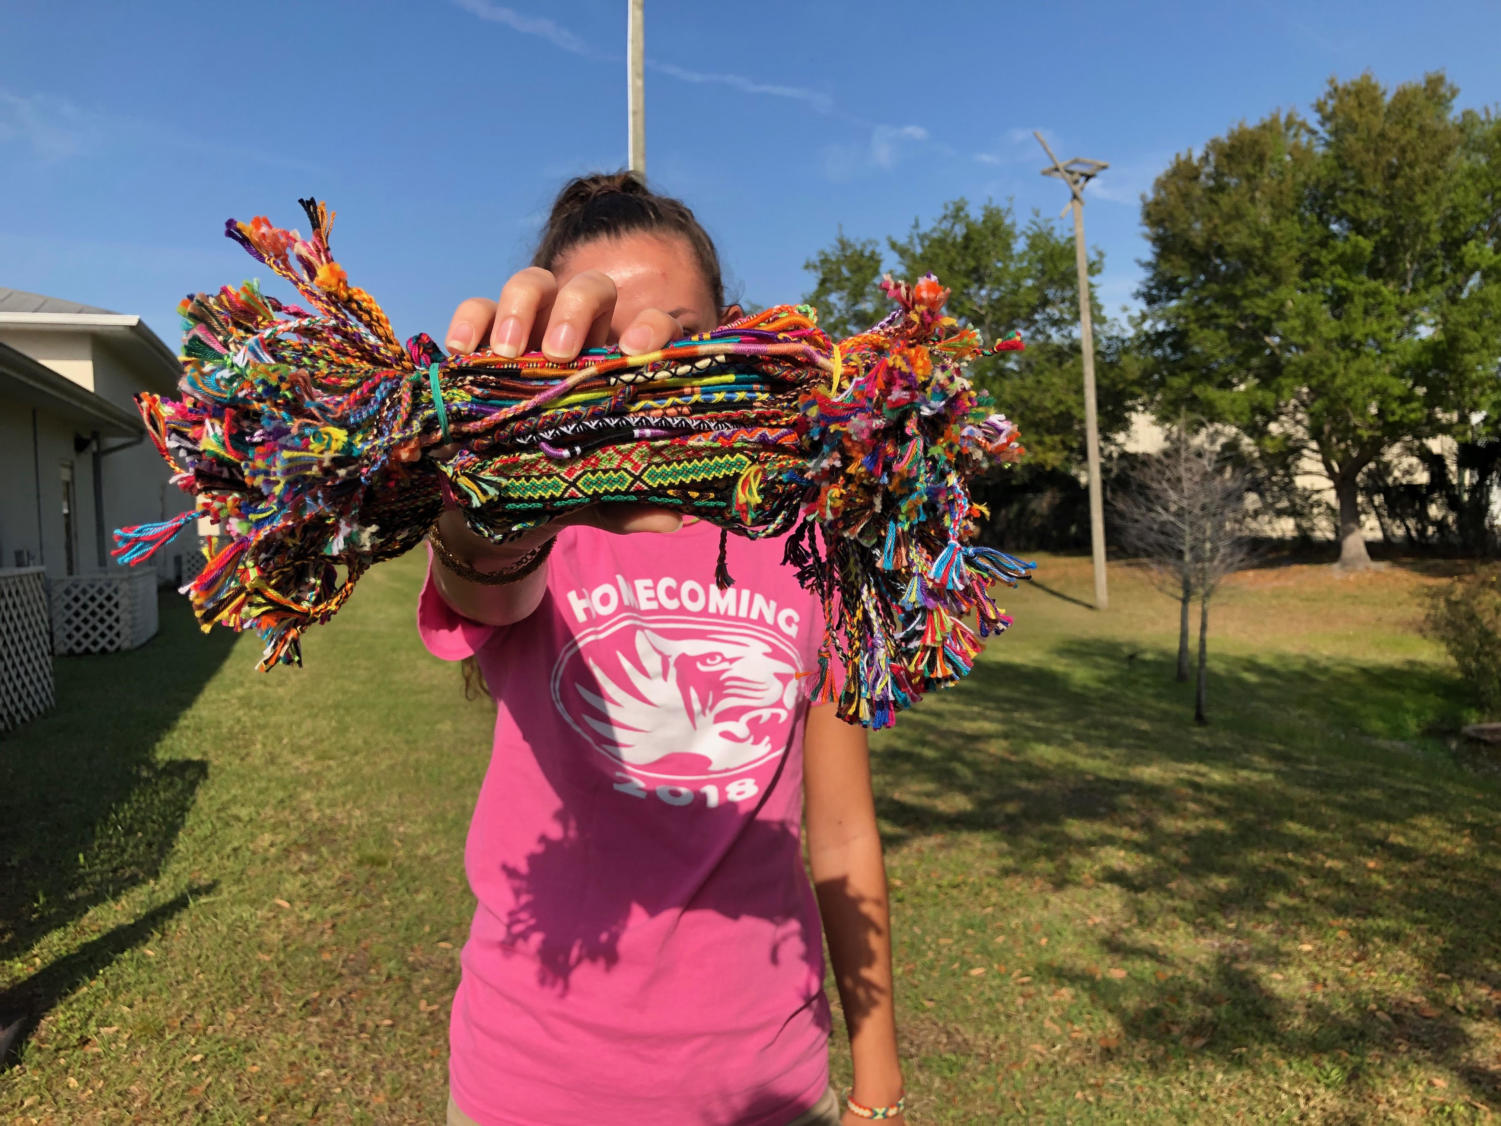 Sofia Obermaier holding some of the bracelets she is selling.